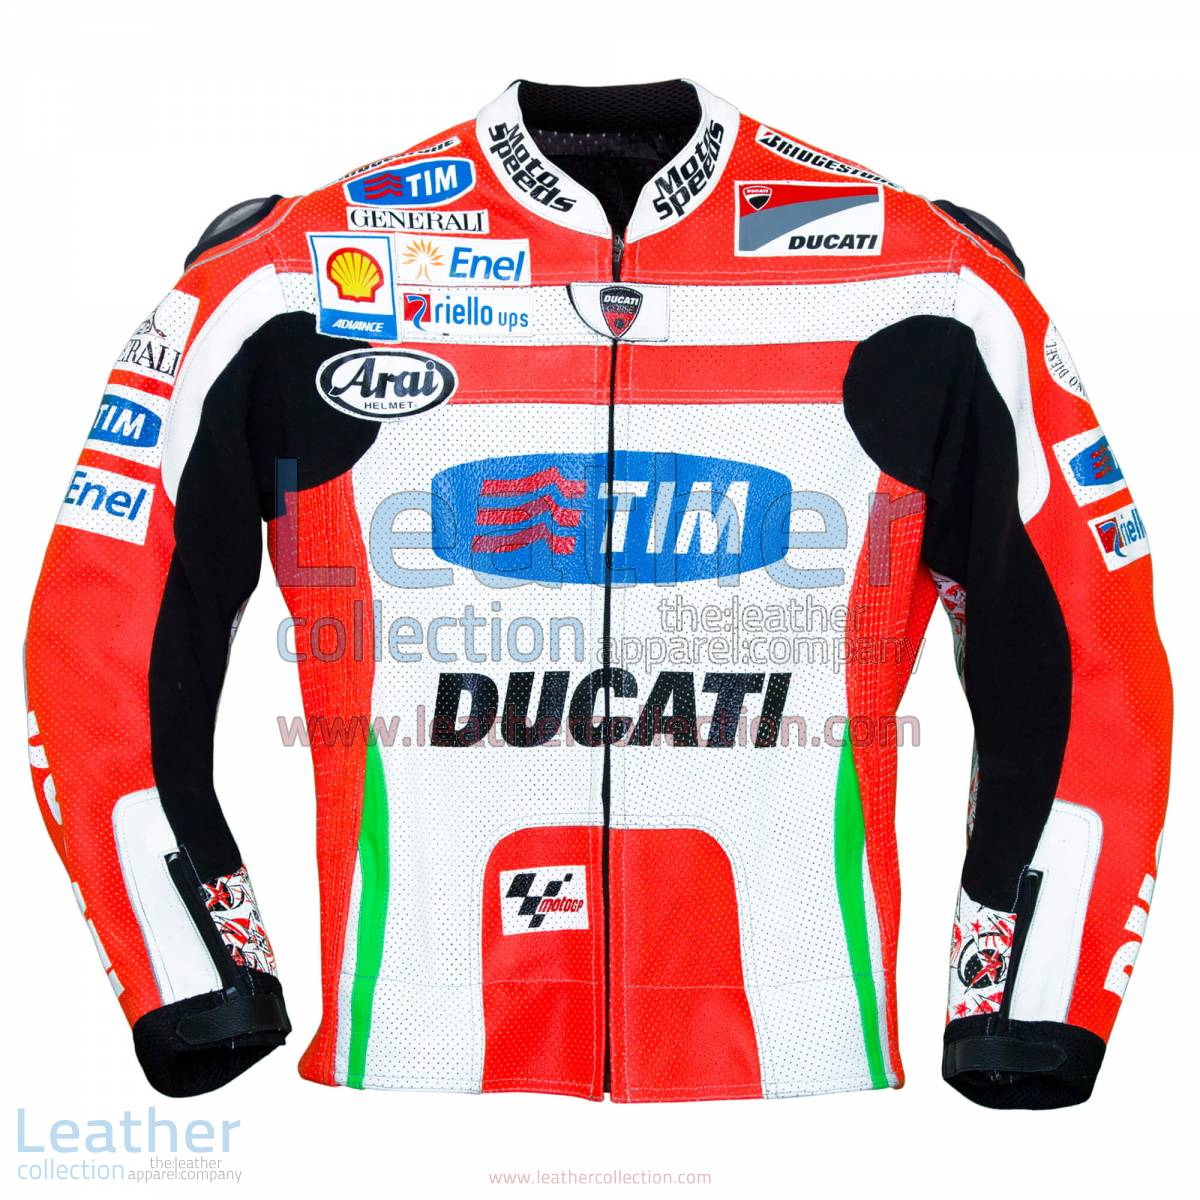 Nicky Hayden Ducati 2012 MotoGP Leather Jacket | Nicky Hayden,Nicky Hayden Ducati 2012 MotoGP Leather Jacket